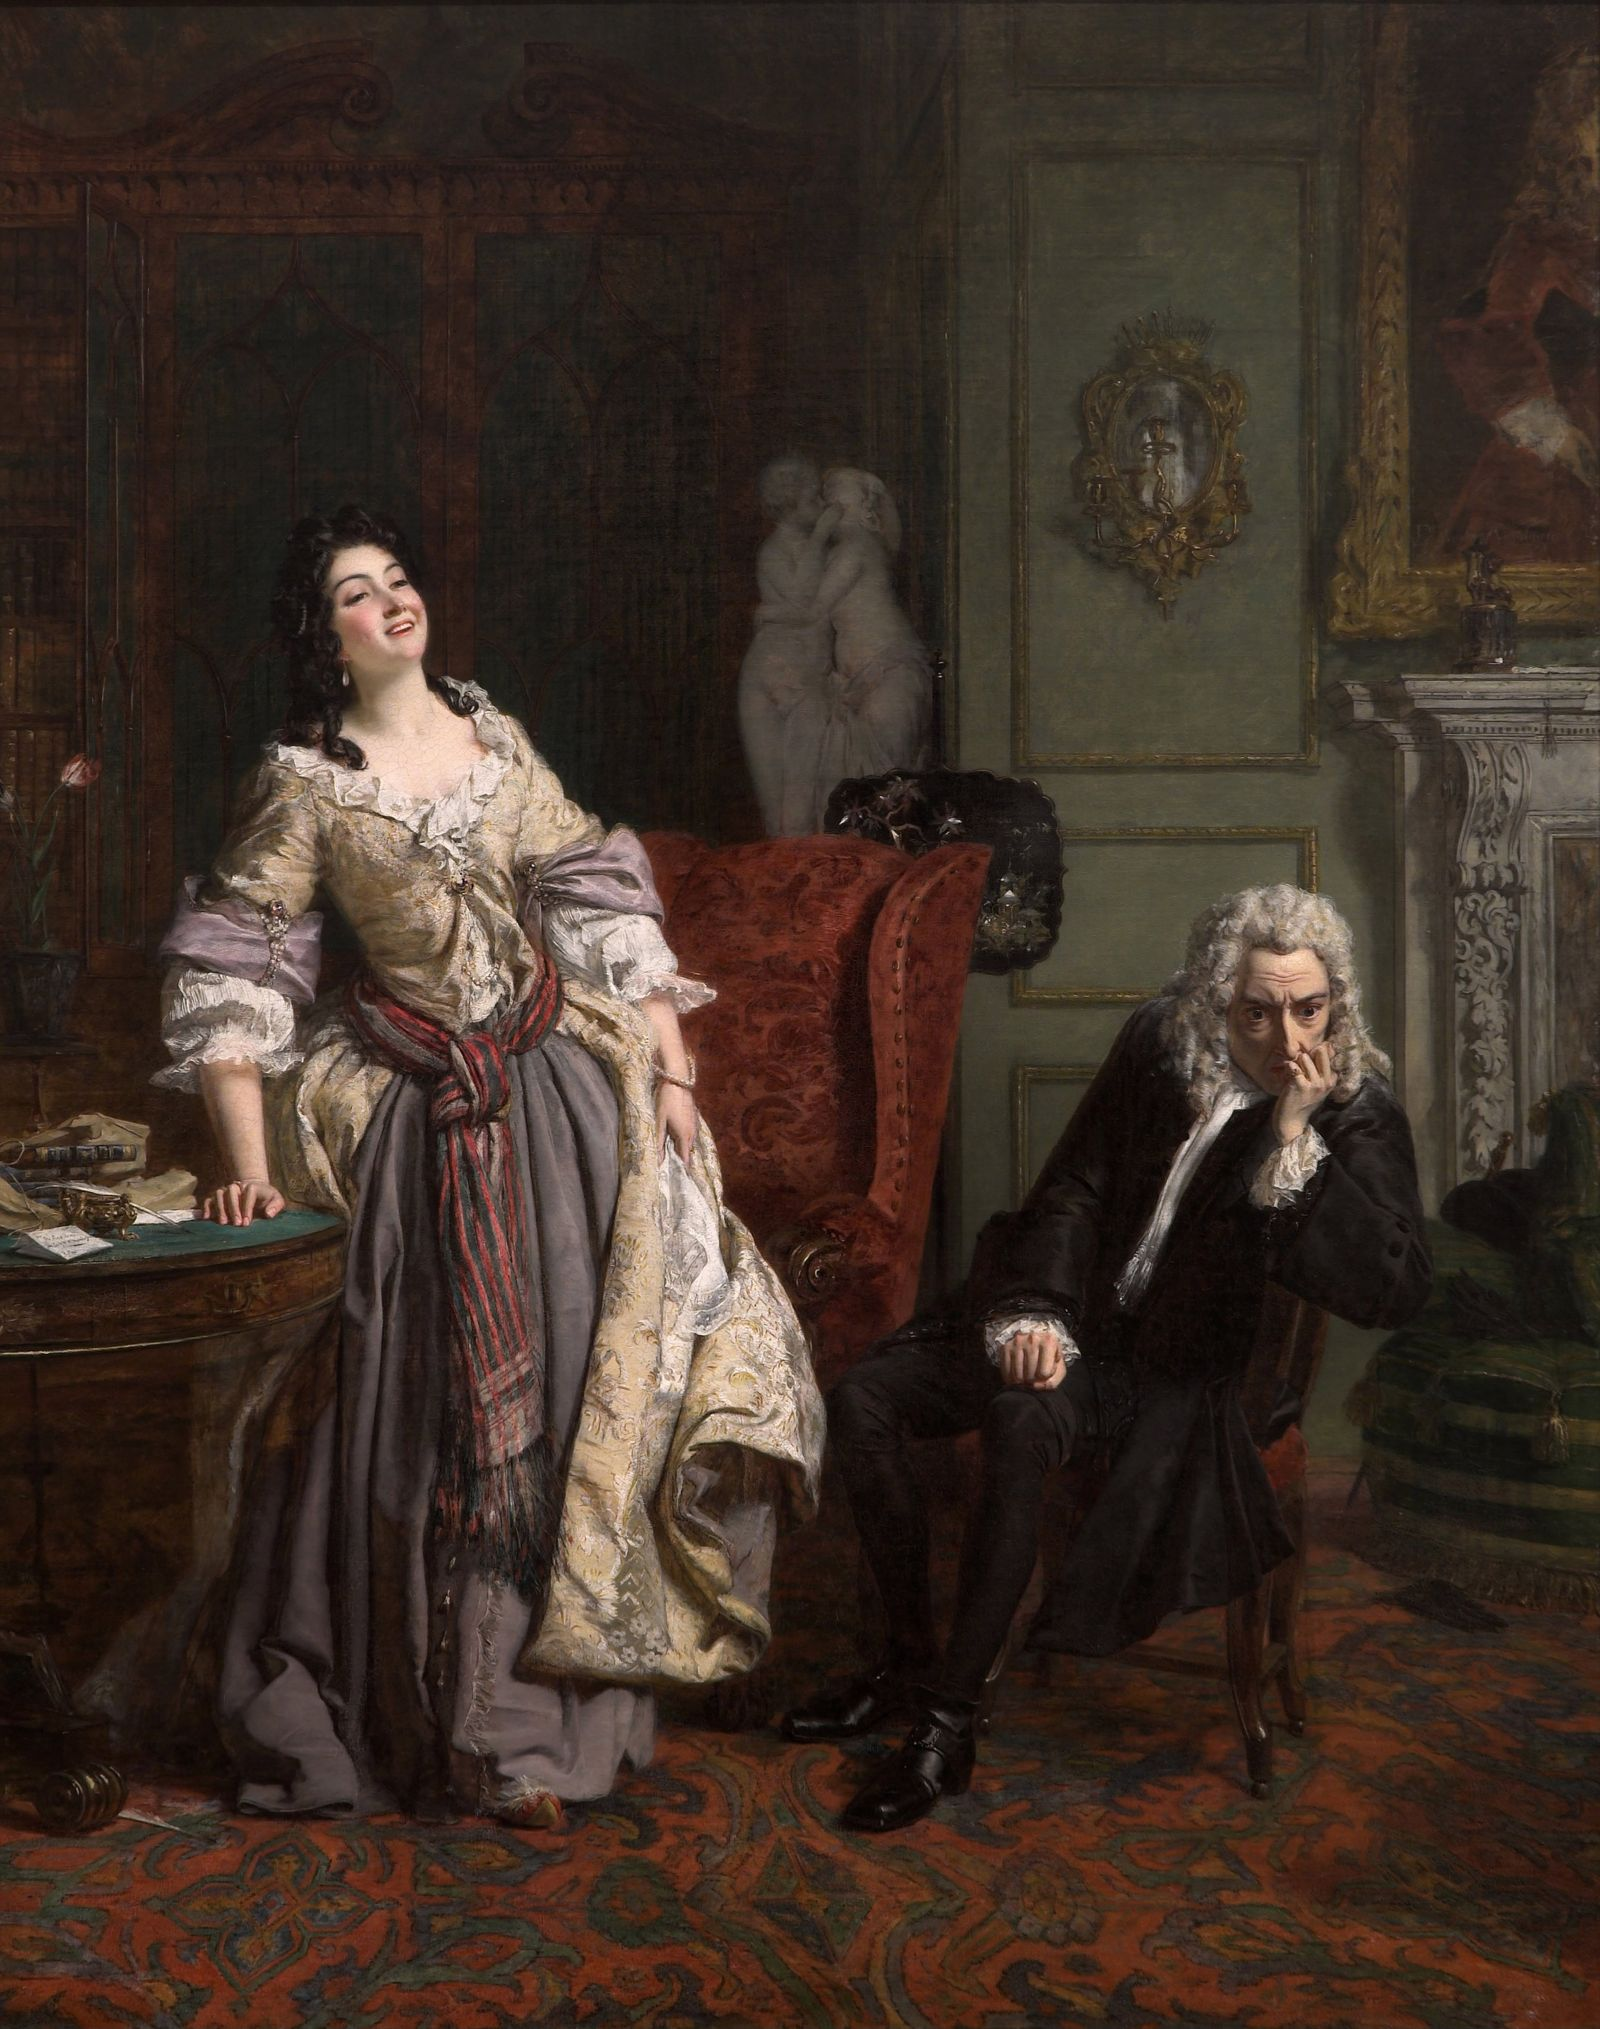 Alexander Pope declared his love to Lady Mary Wortley Montagu, 1852